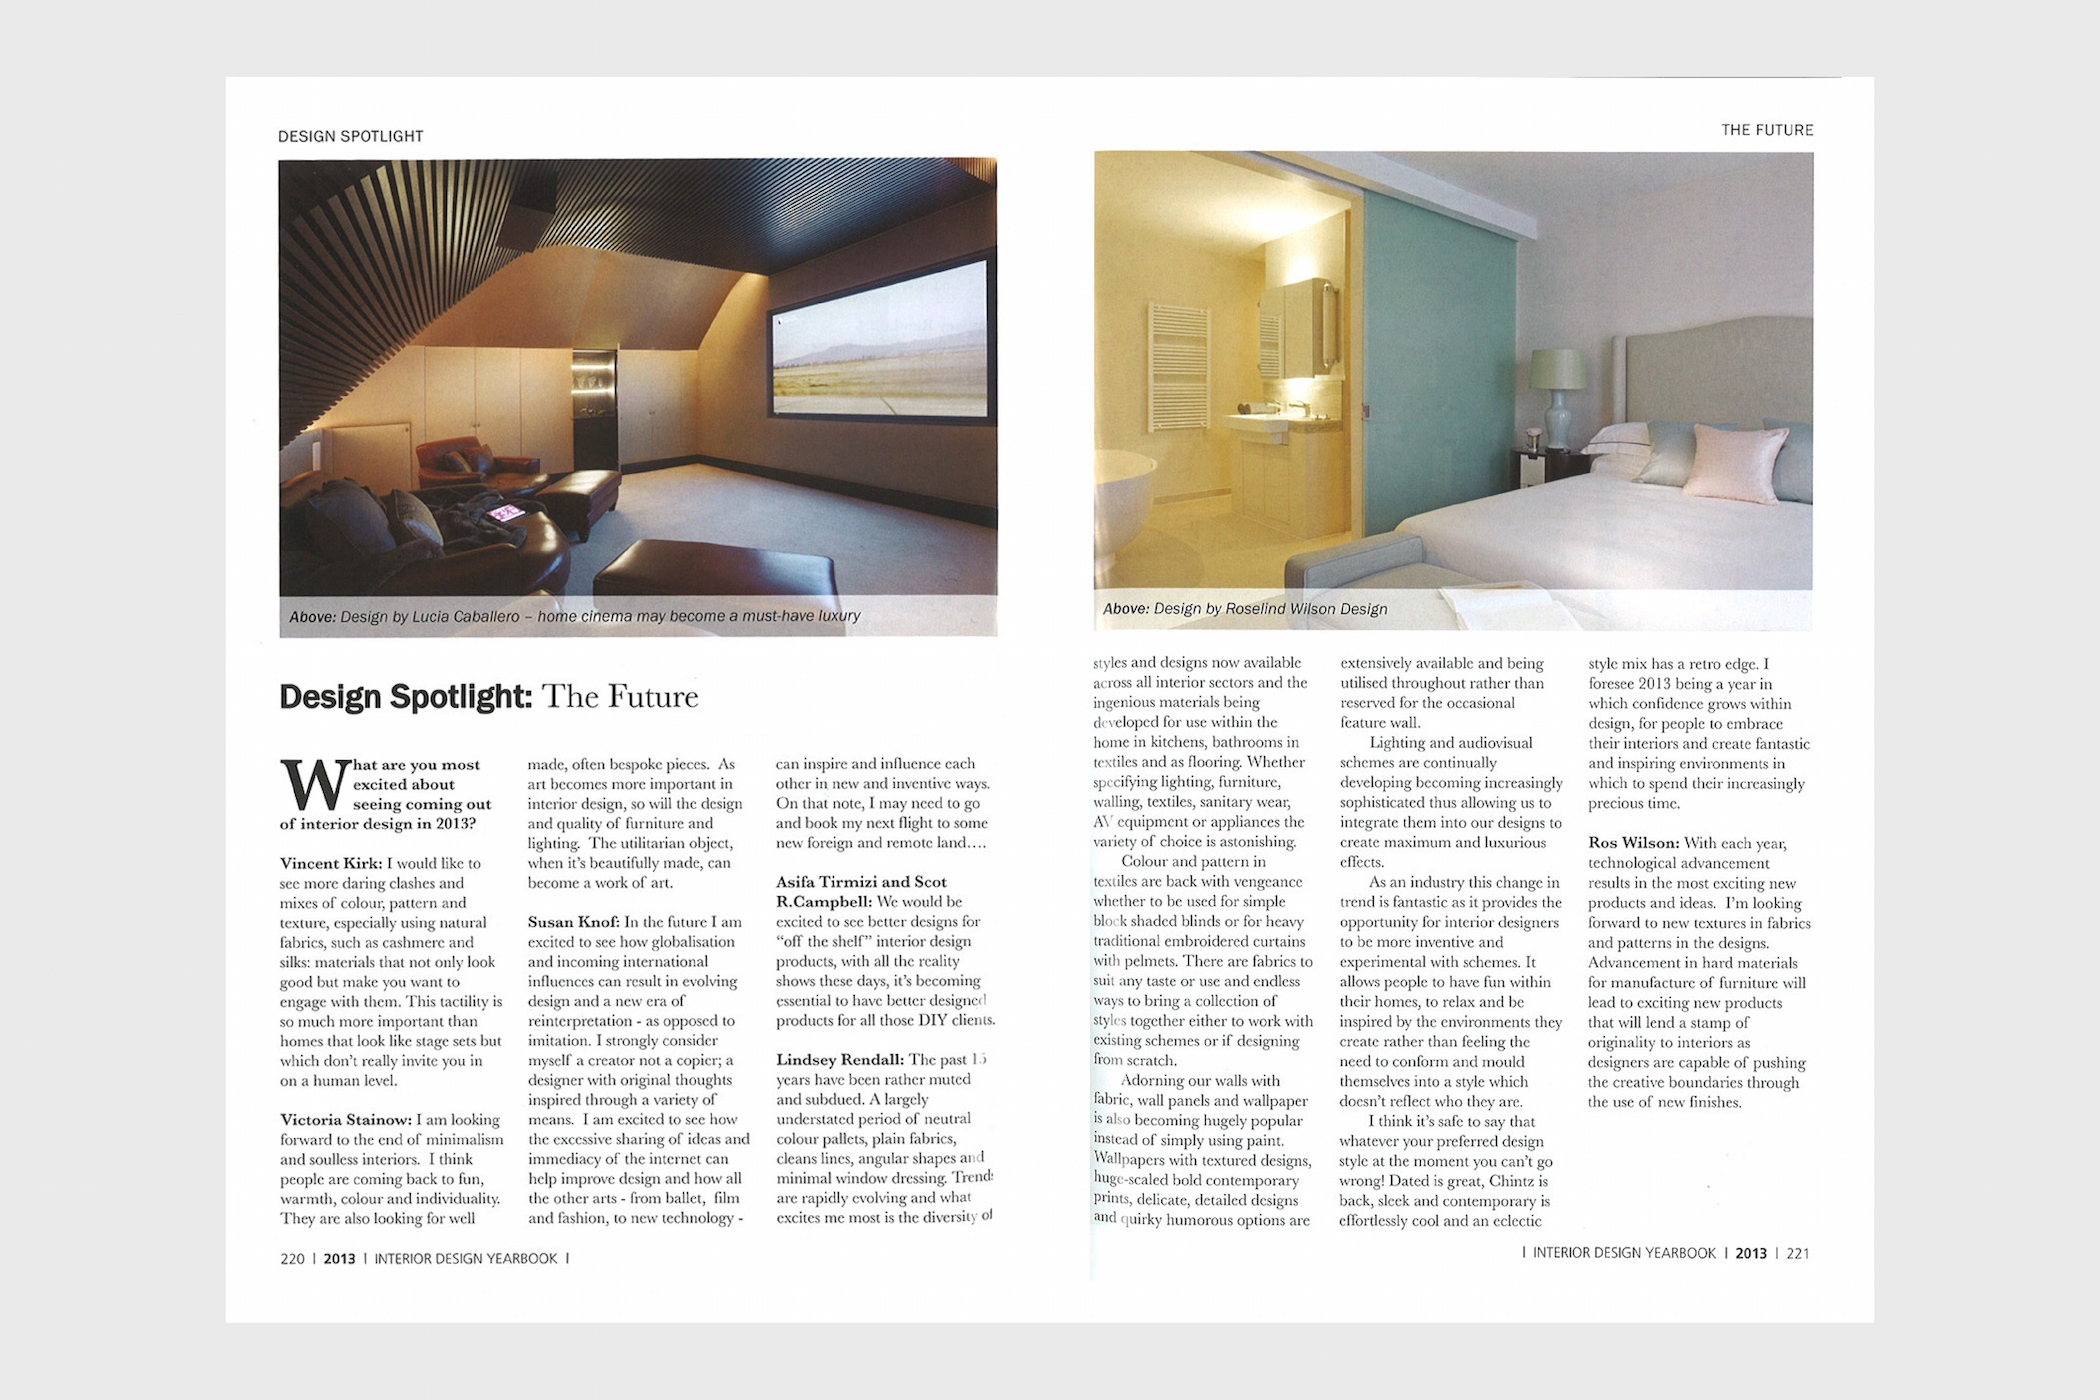 knof-press--interior-design-yearbook--2013_14.jpg